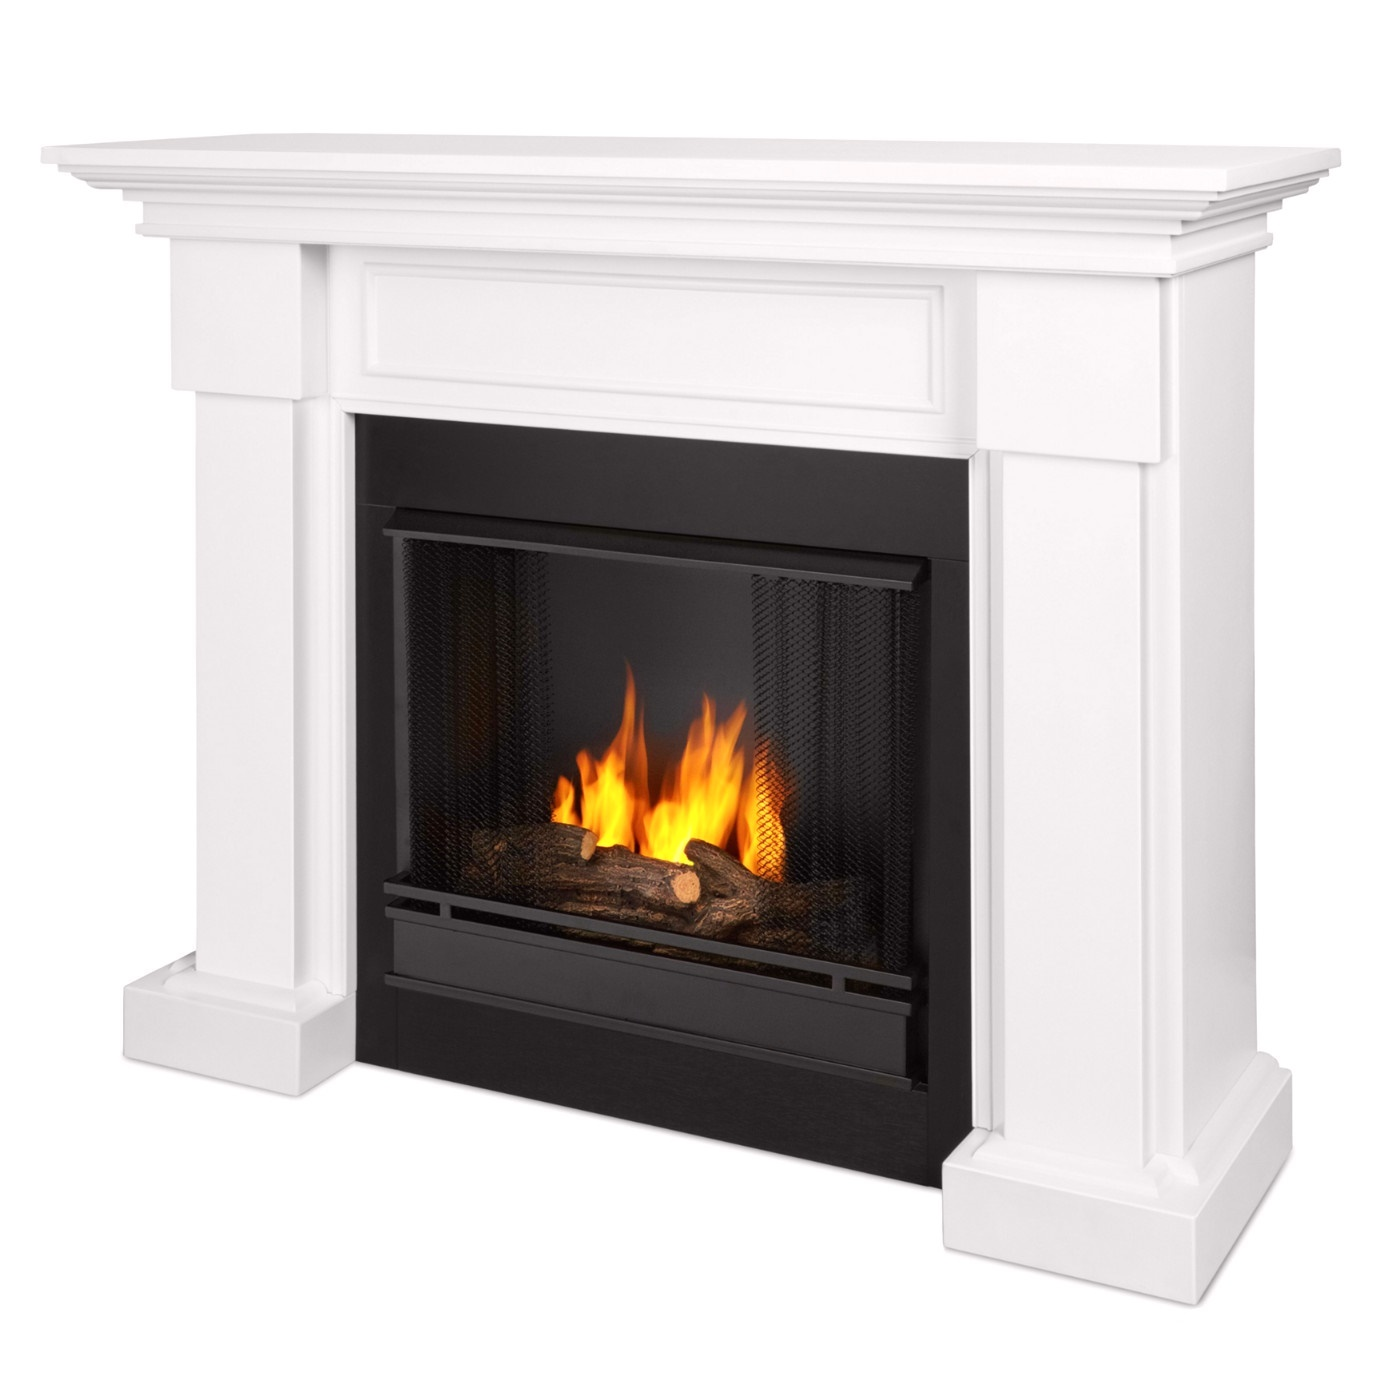 Hillcrest Ventless Gel Fuel Fireplace In White With Logs 48x39